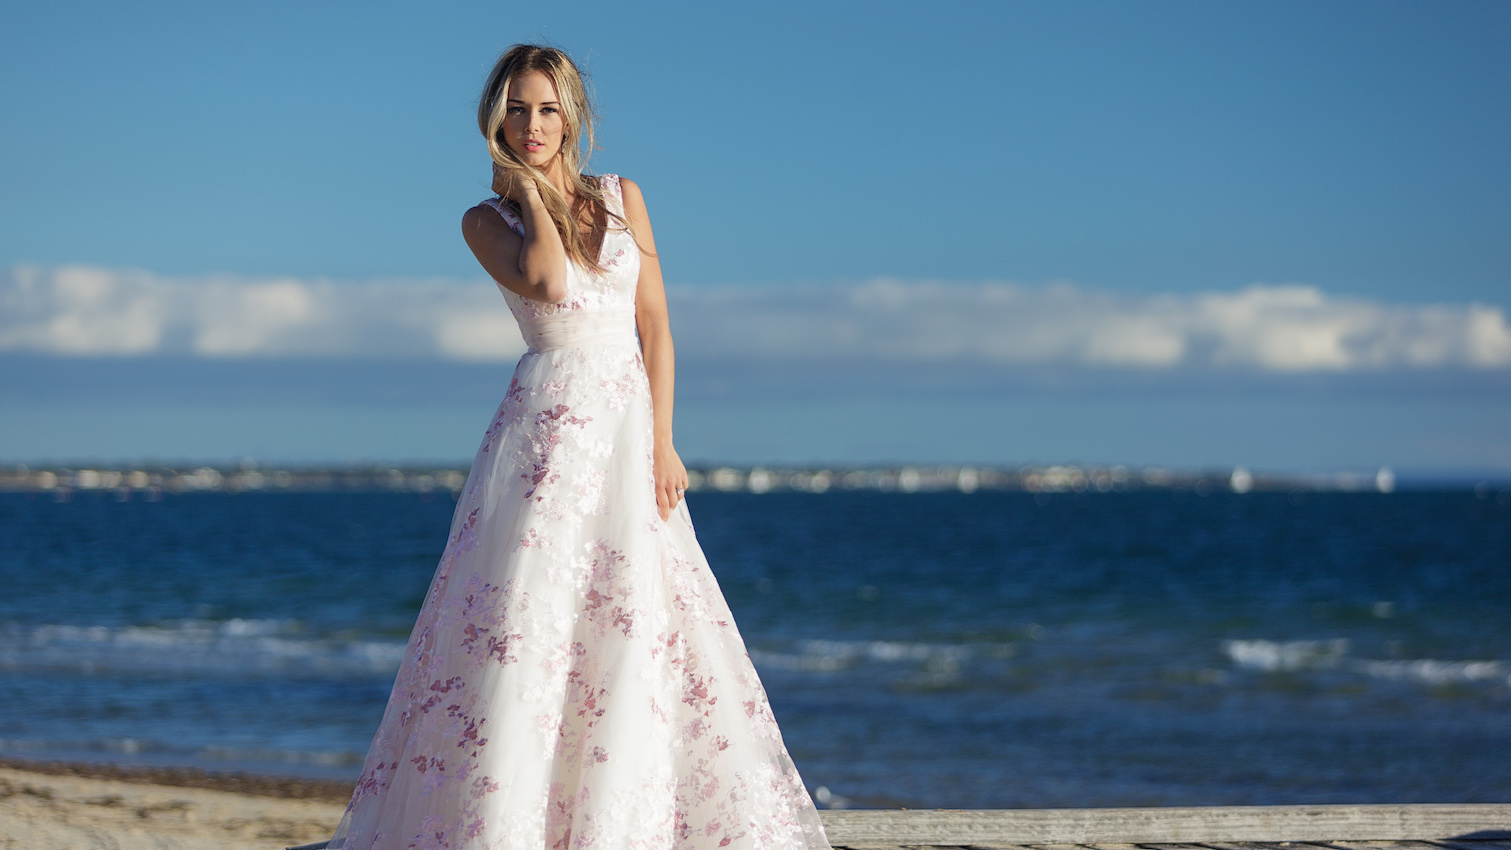 Fox Bridal Gowns- Trusted By Brides Since 1932